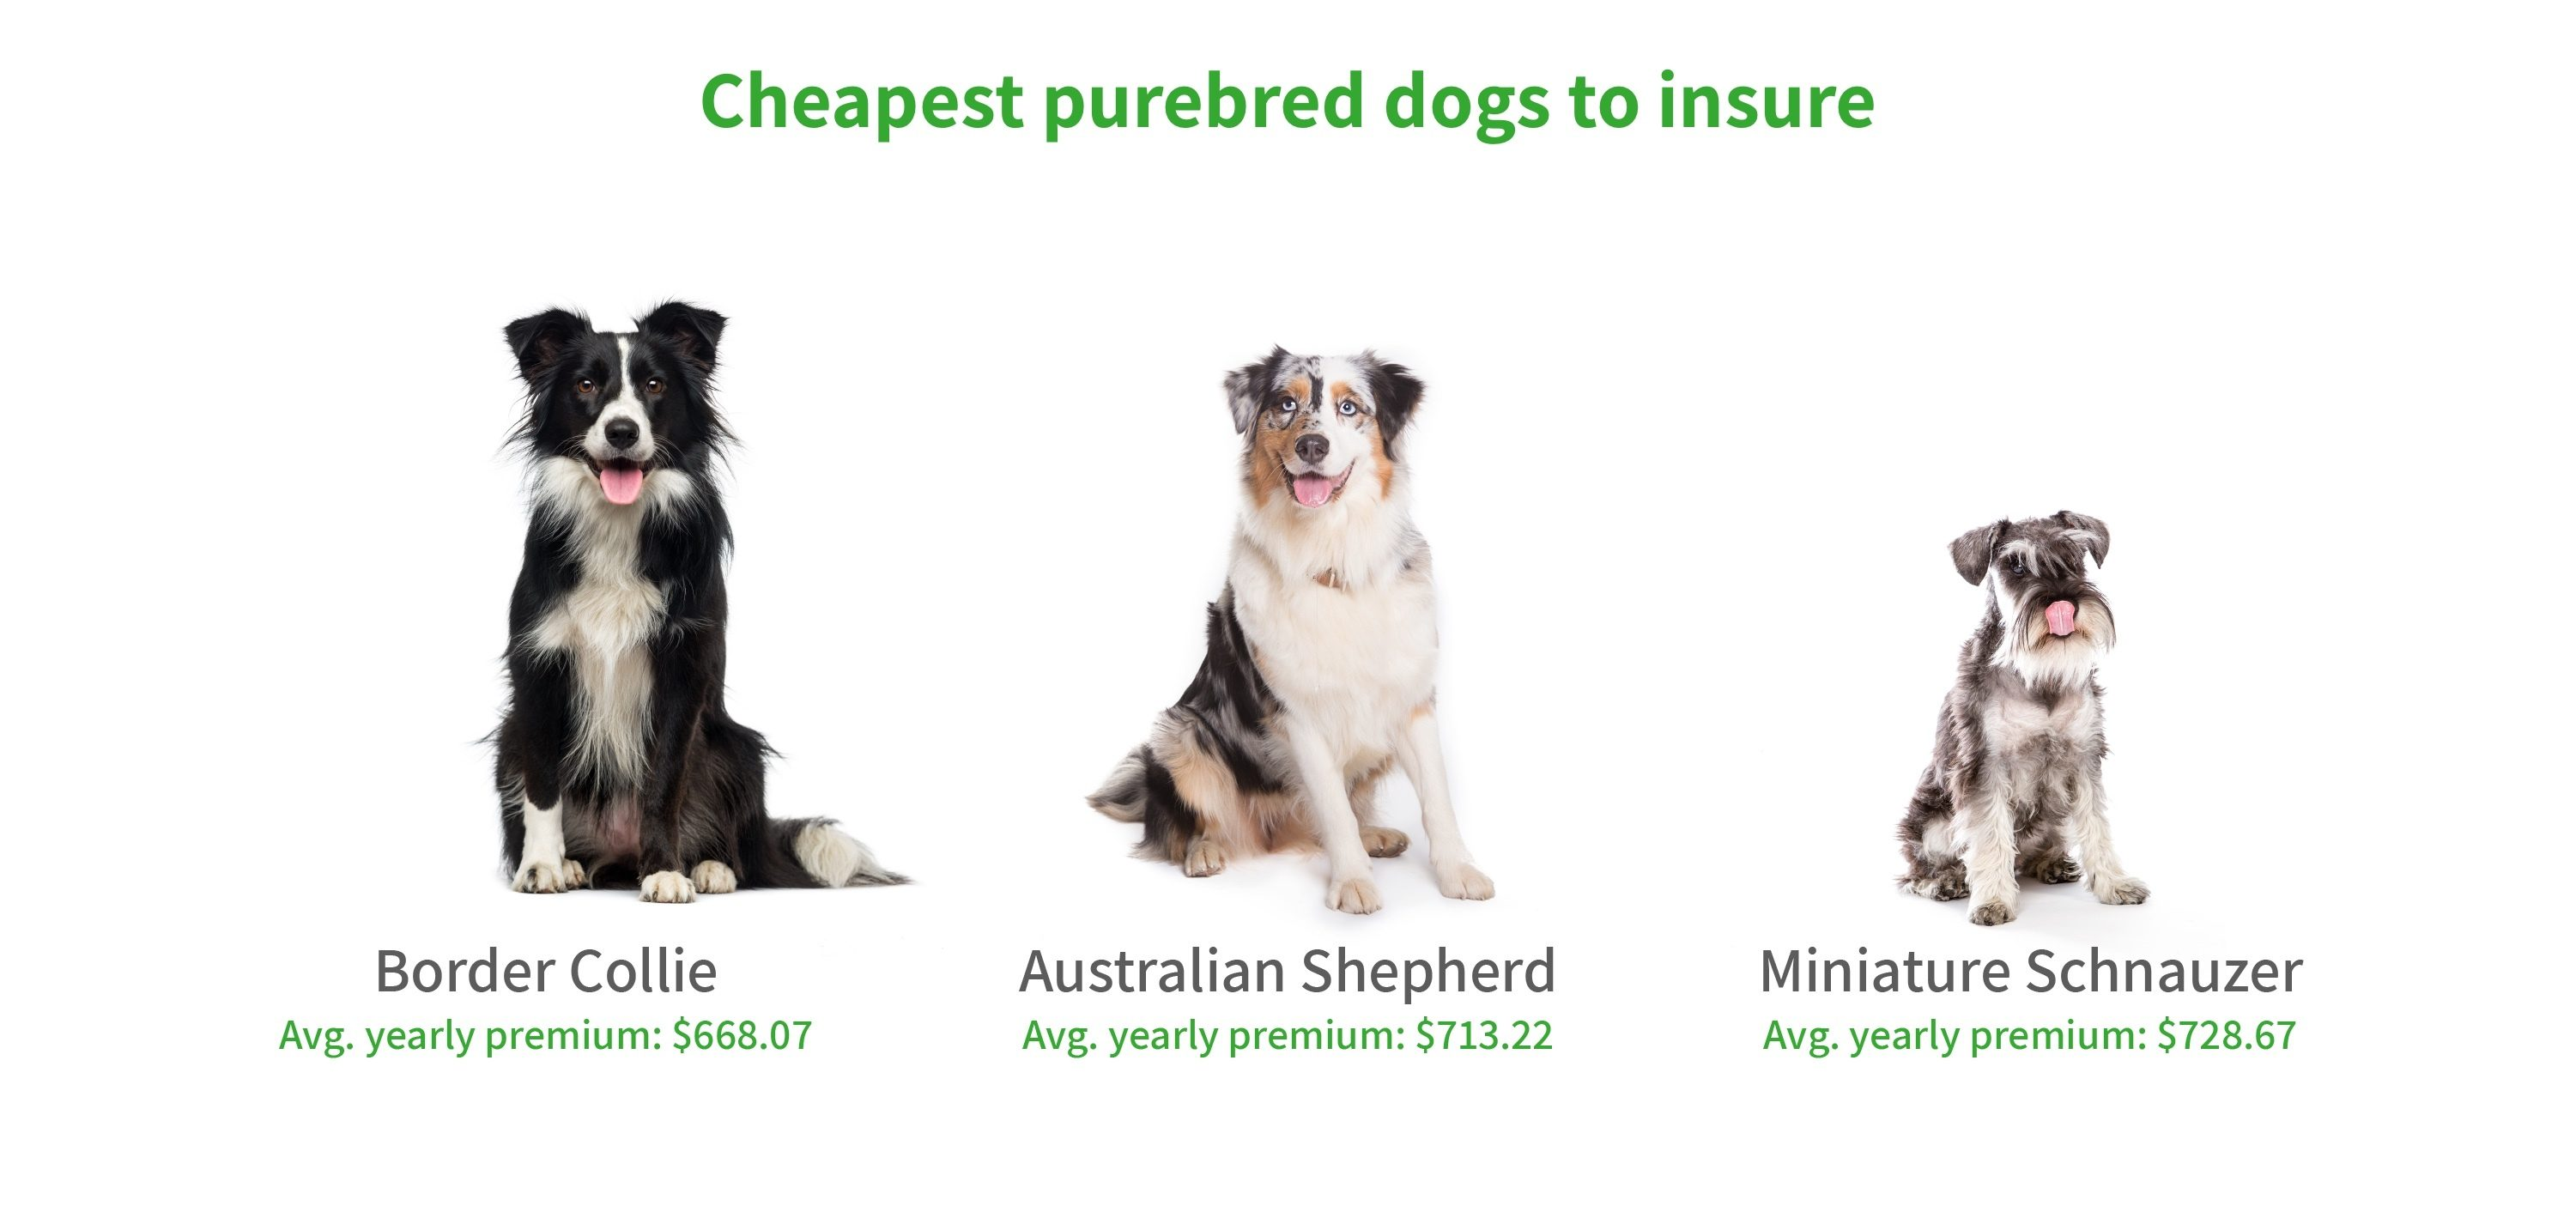 Graphic showing cheapest purebred dogs to insure